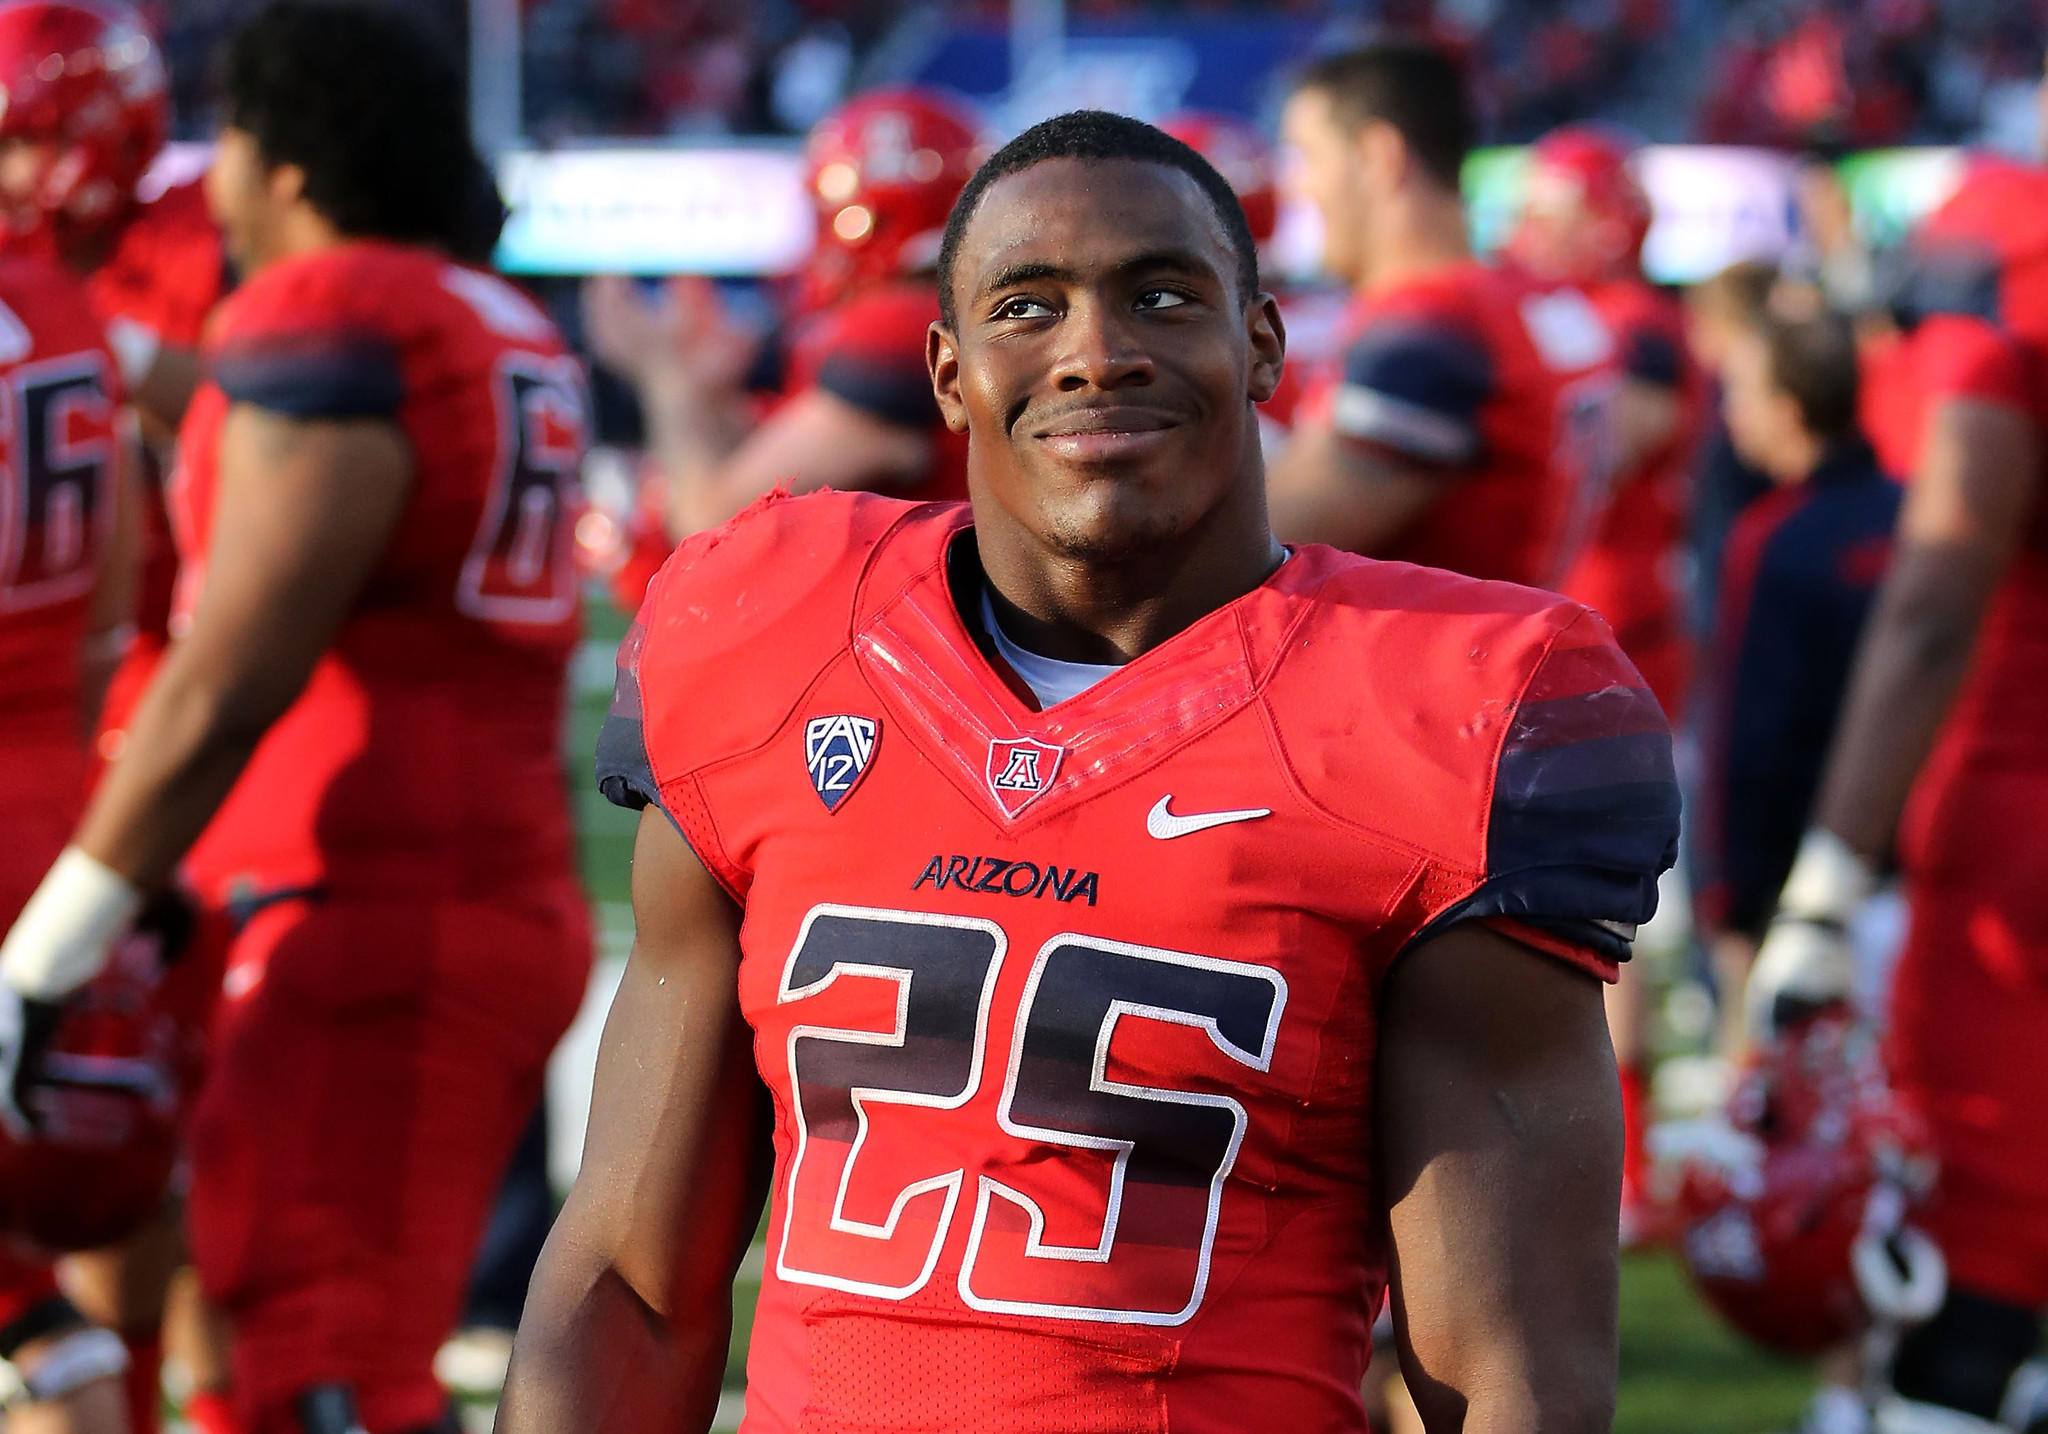 Running back Ka'Deem Carey of the Arizona Wildcats in 2013.